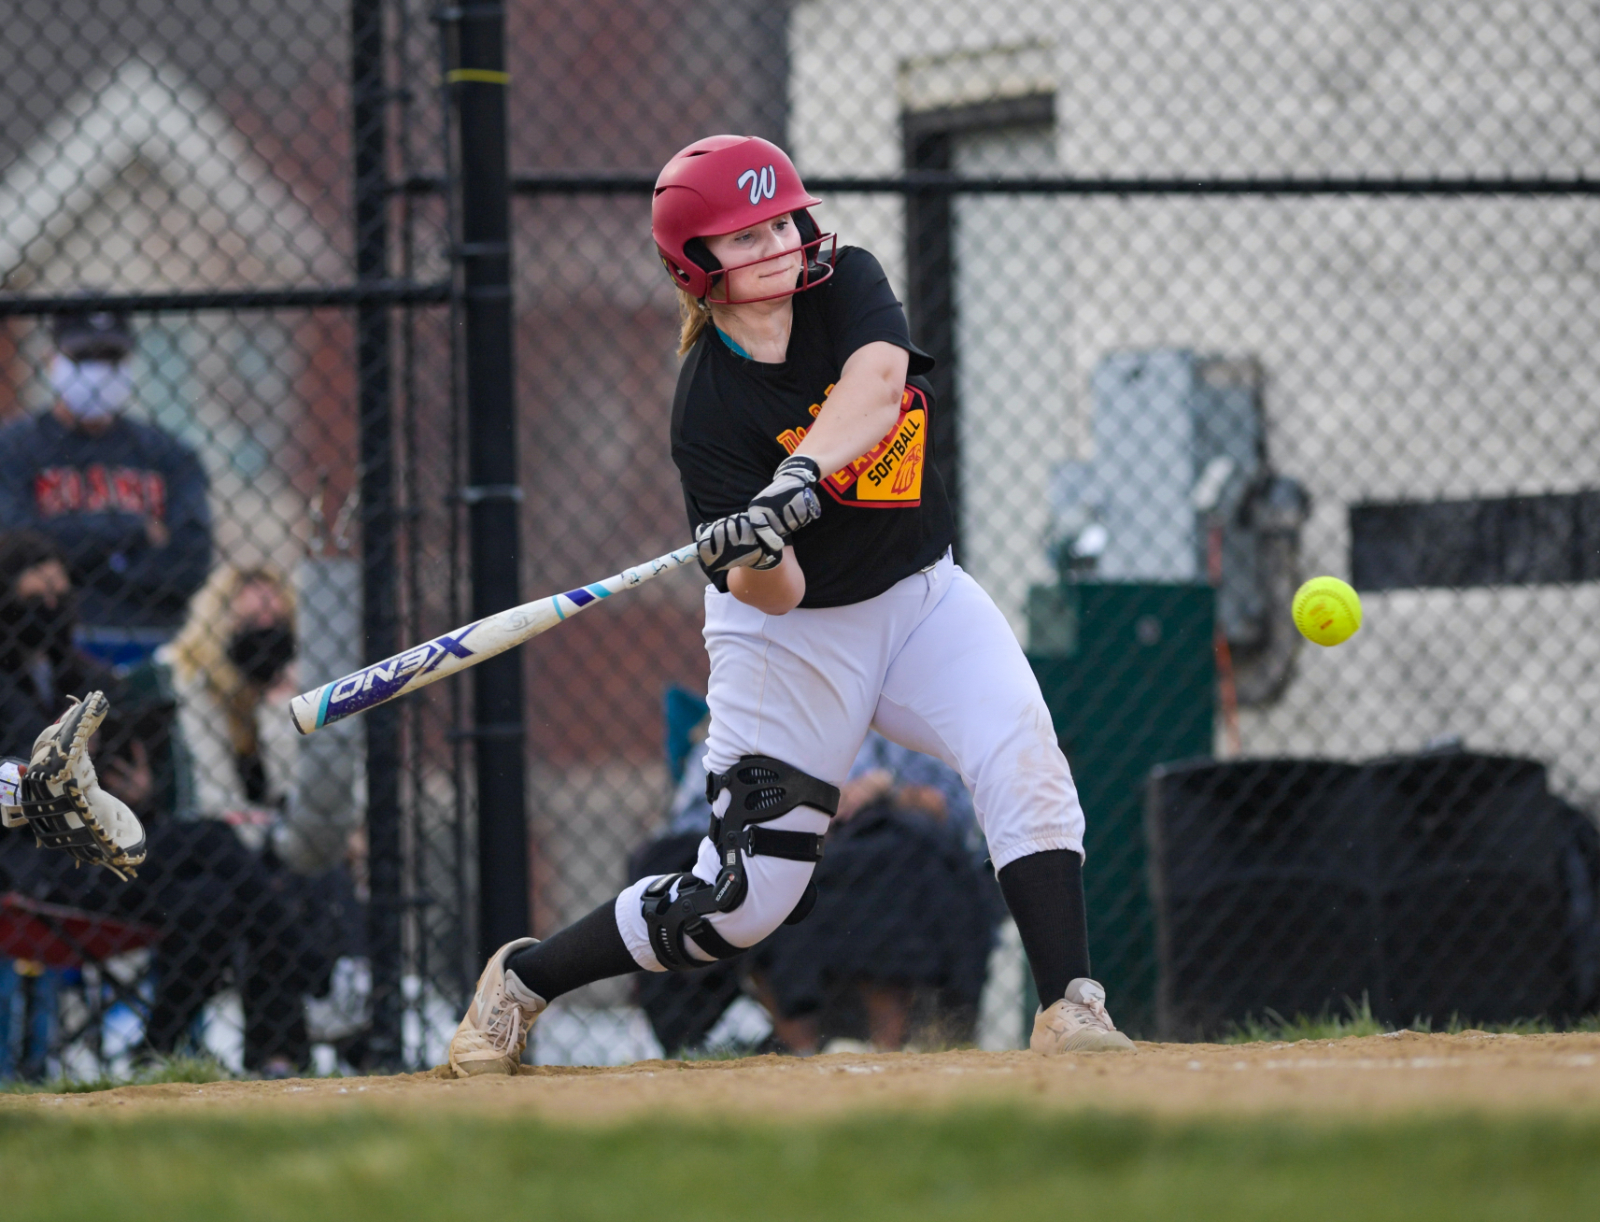 PHOTO GALLERY: Big Walnut softball team falls to Westerville Central